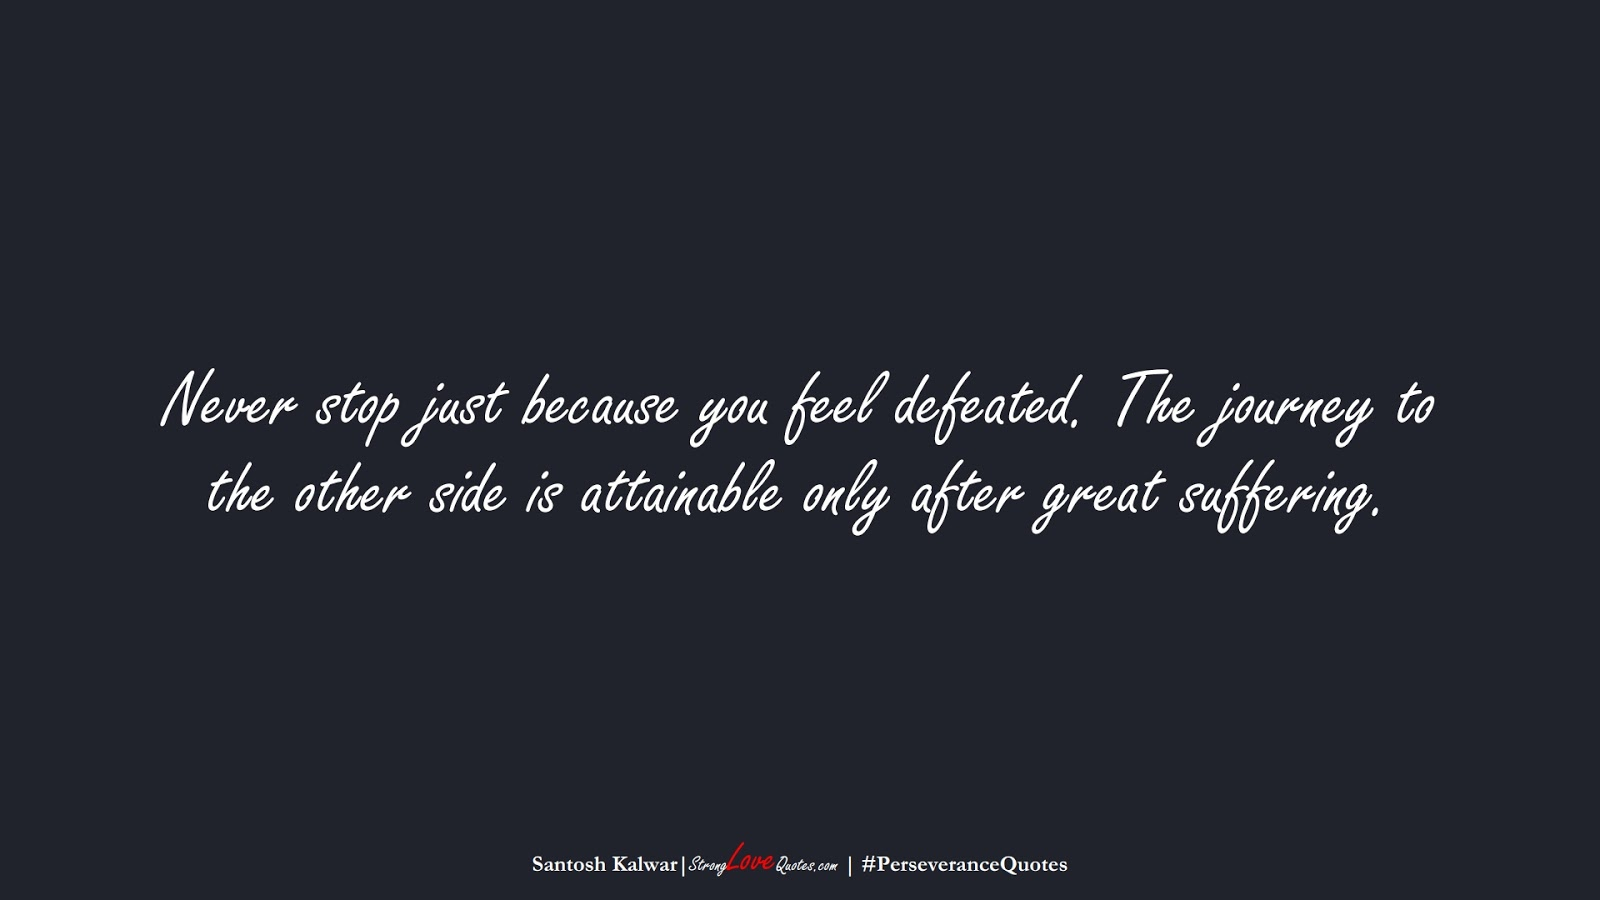 Never stop just because you feel defeated. The journey to the other side is attainable only after great suffering. (Santosh Kalwar);  #PerseveranceQuotes